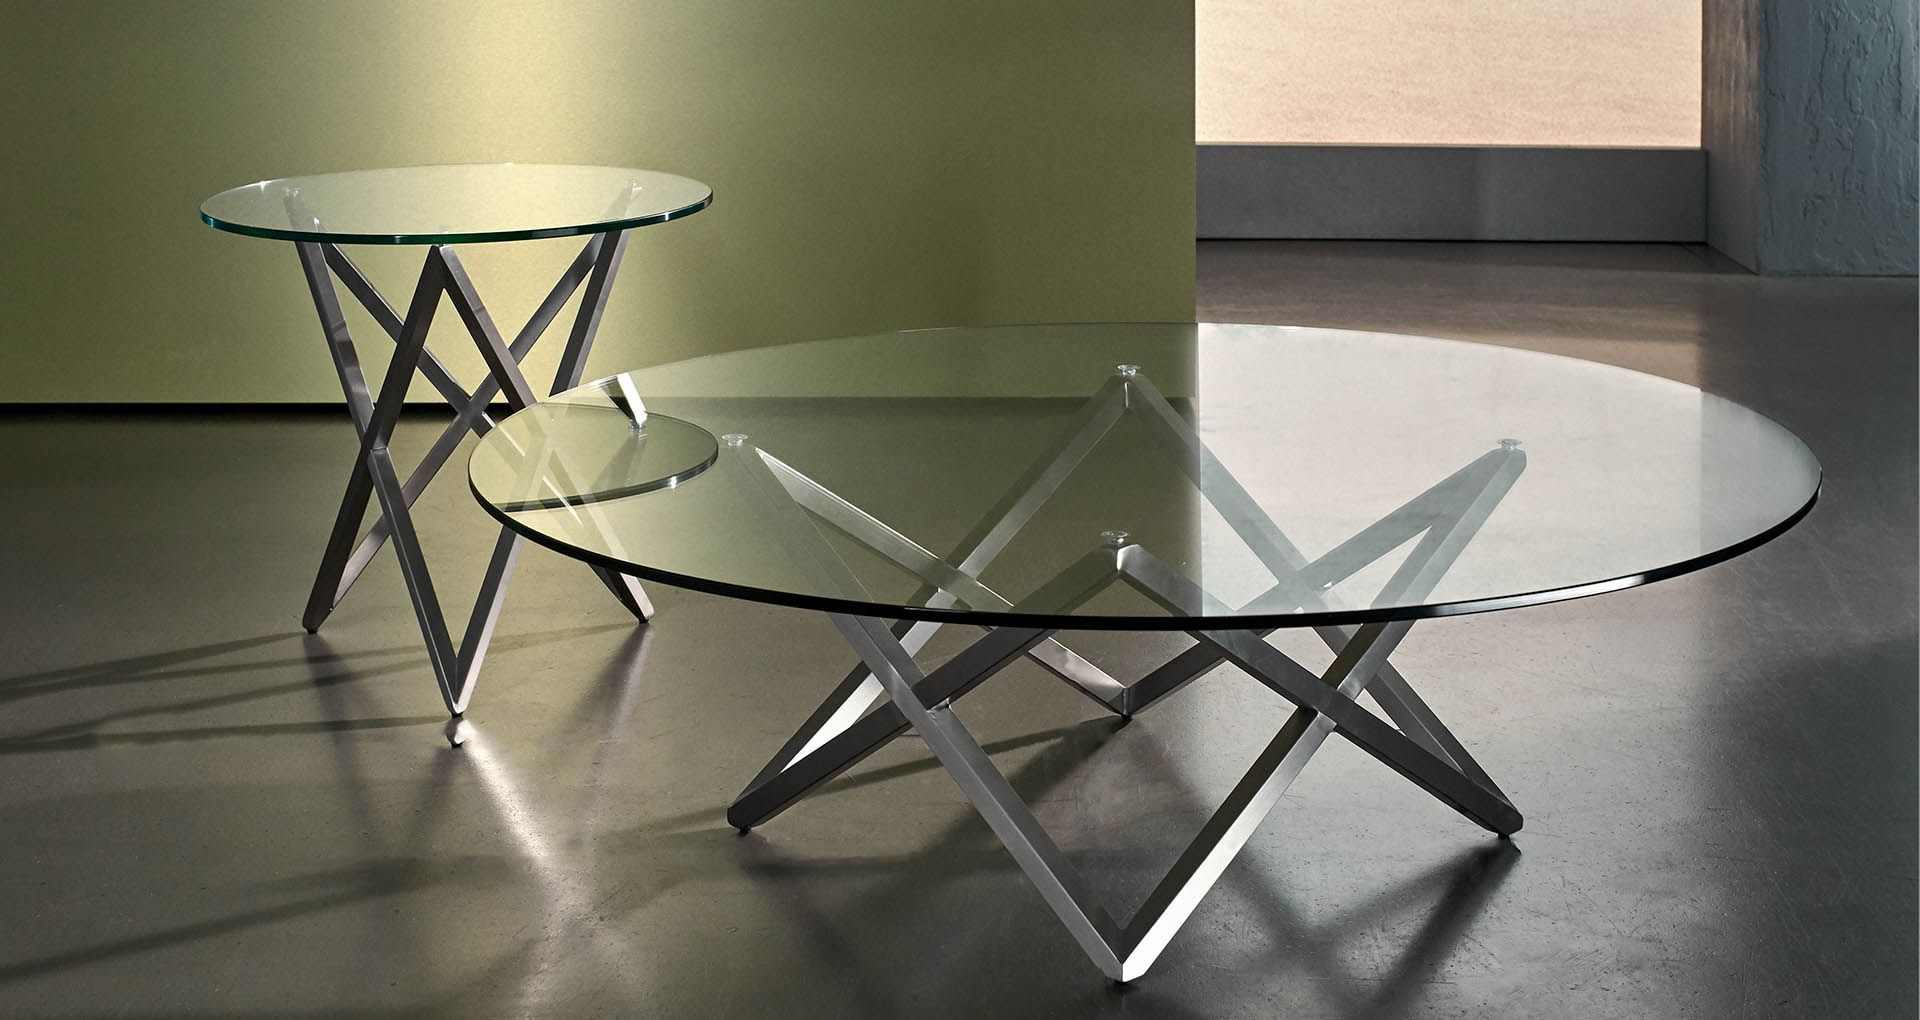 Star Coffee Tables Products Nick Scali Furniture Coffee Table Coffee Table Legs Table [ 1020 x 1920 Pixel ]